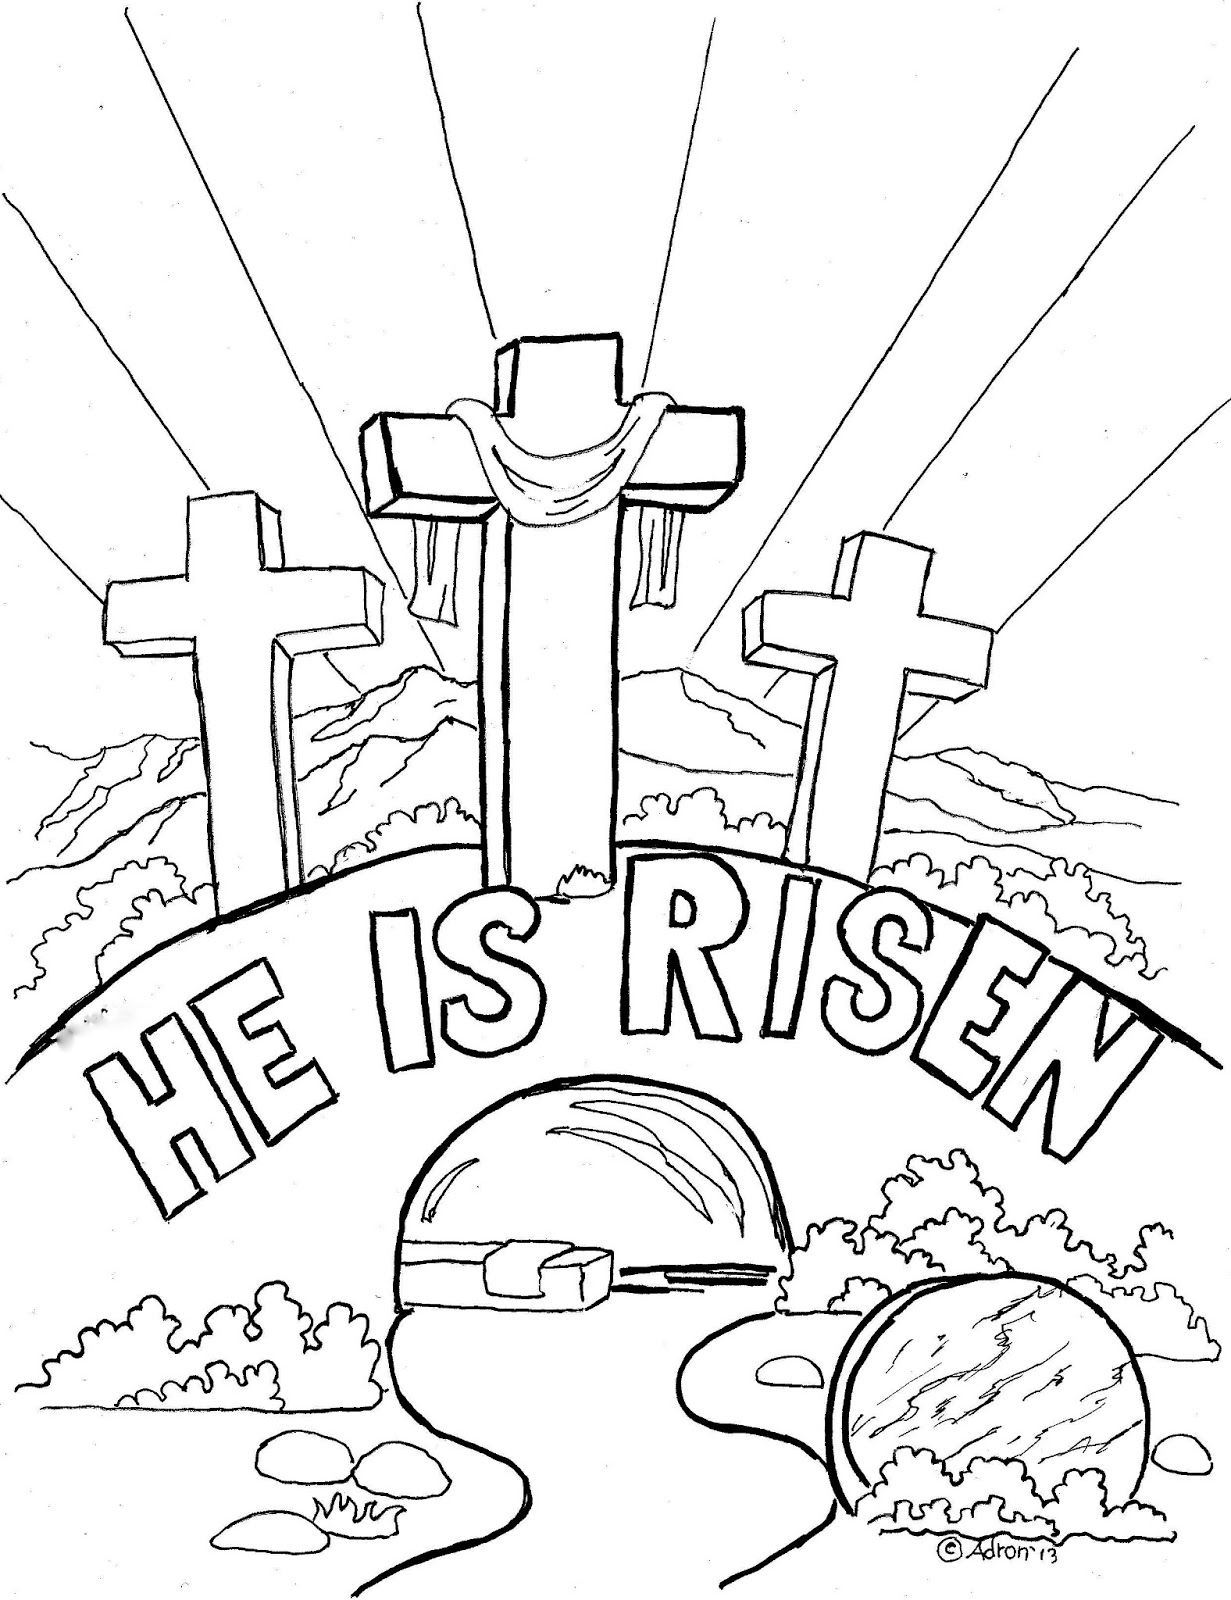 Coloring pages 6 year olds - Easter Coloring Page For Kids He Is Risen The Blog Has Suggestions For